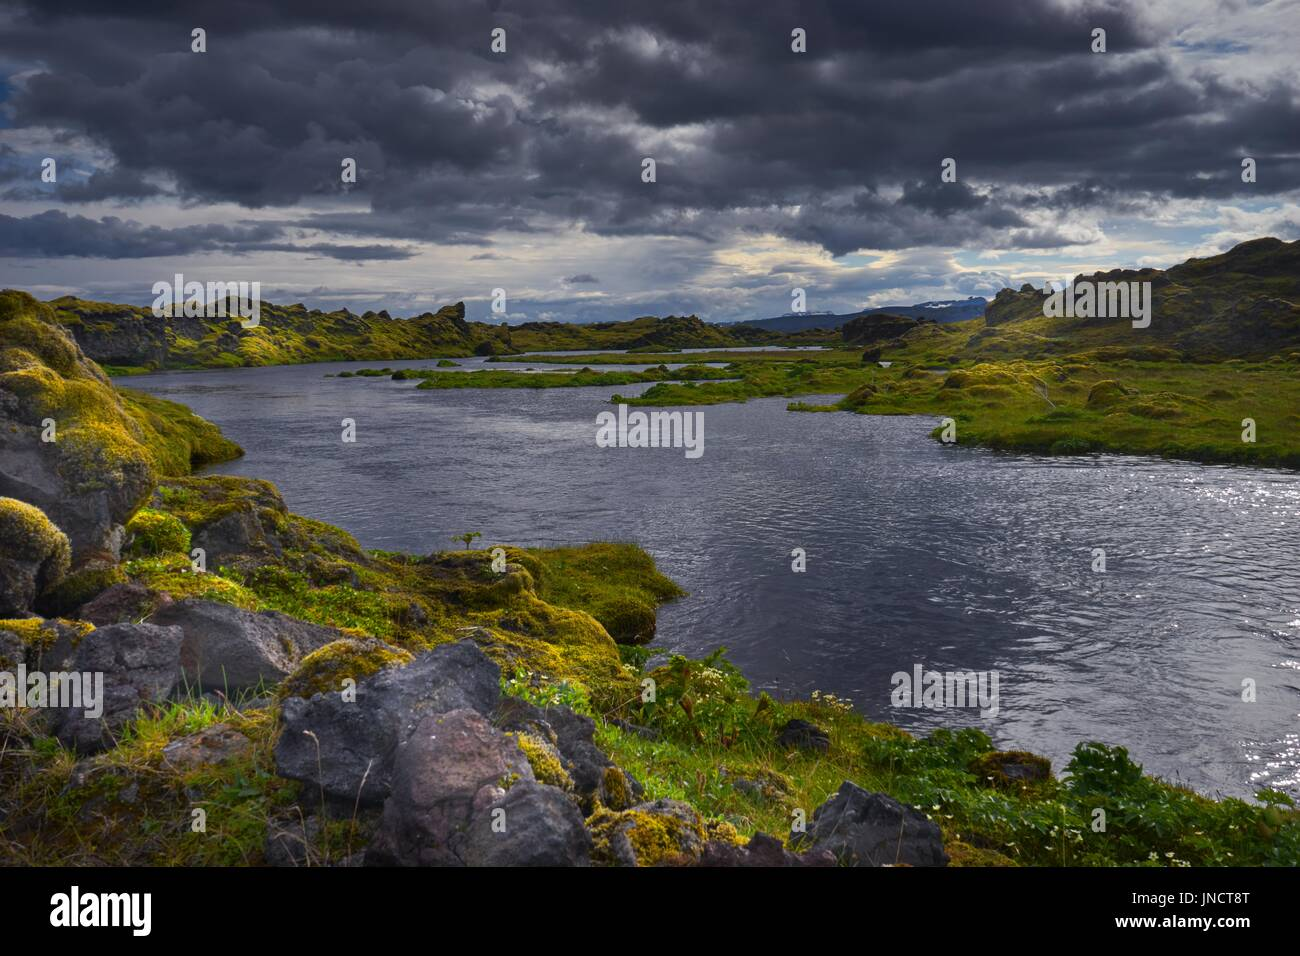 The river Skaftá near the Laki volcano in the south of iceland - Stock Image